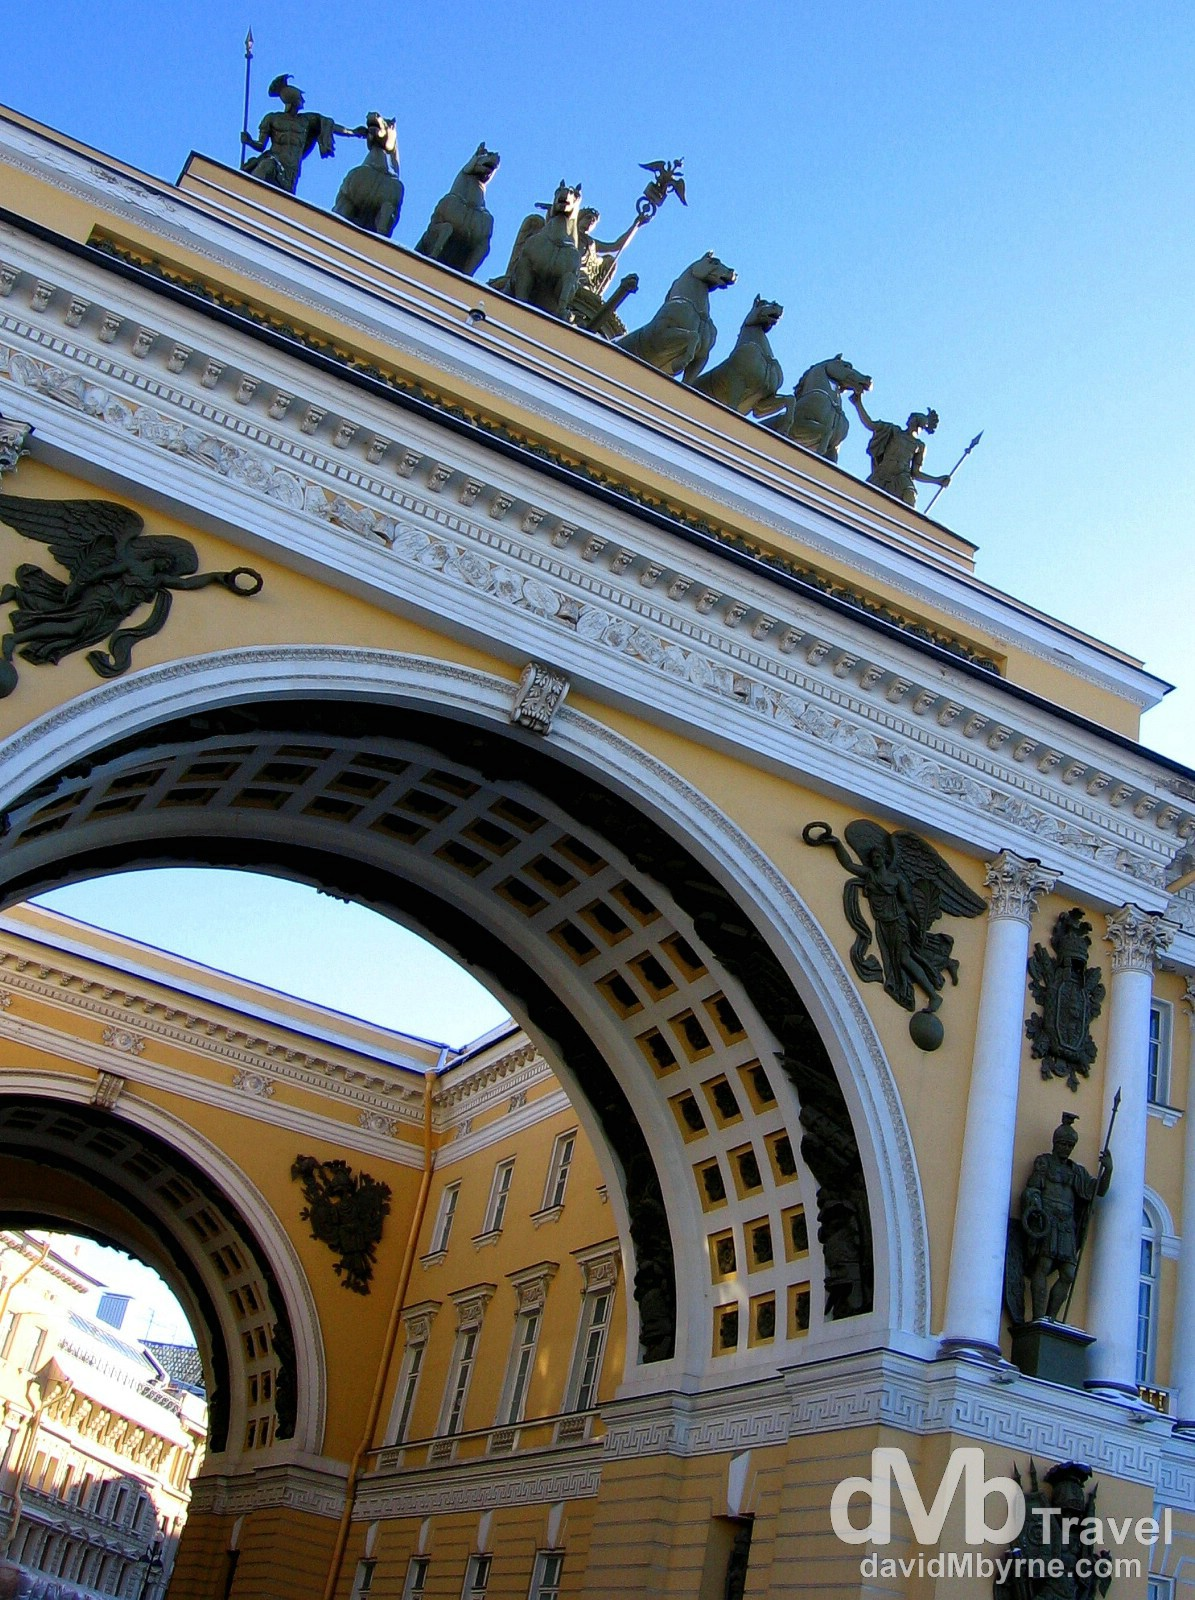 The Double Triumphal Arch of the General Staff Building off Palace Square in St. Petersburg, Russia. February 27, 2006.